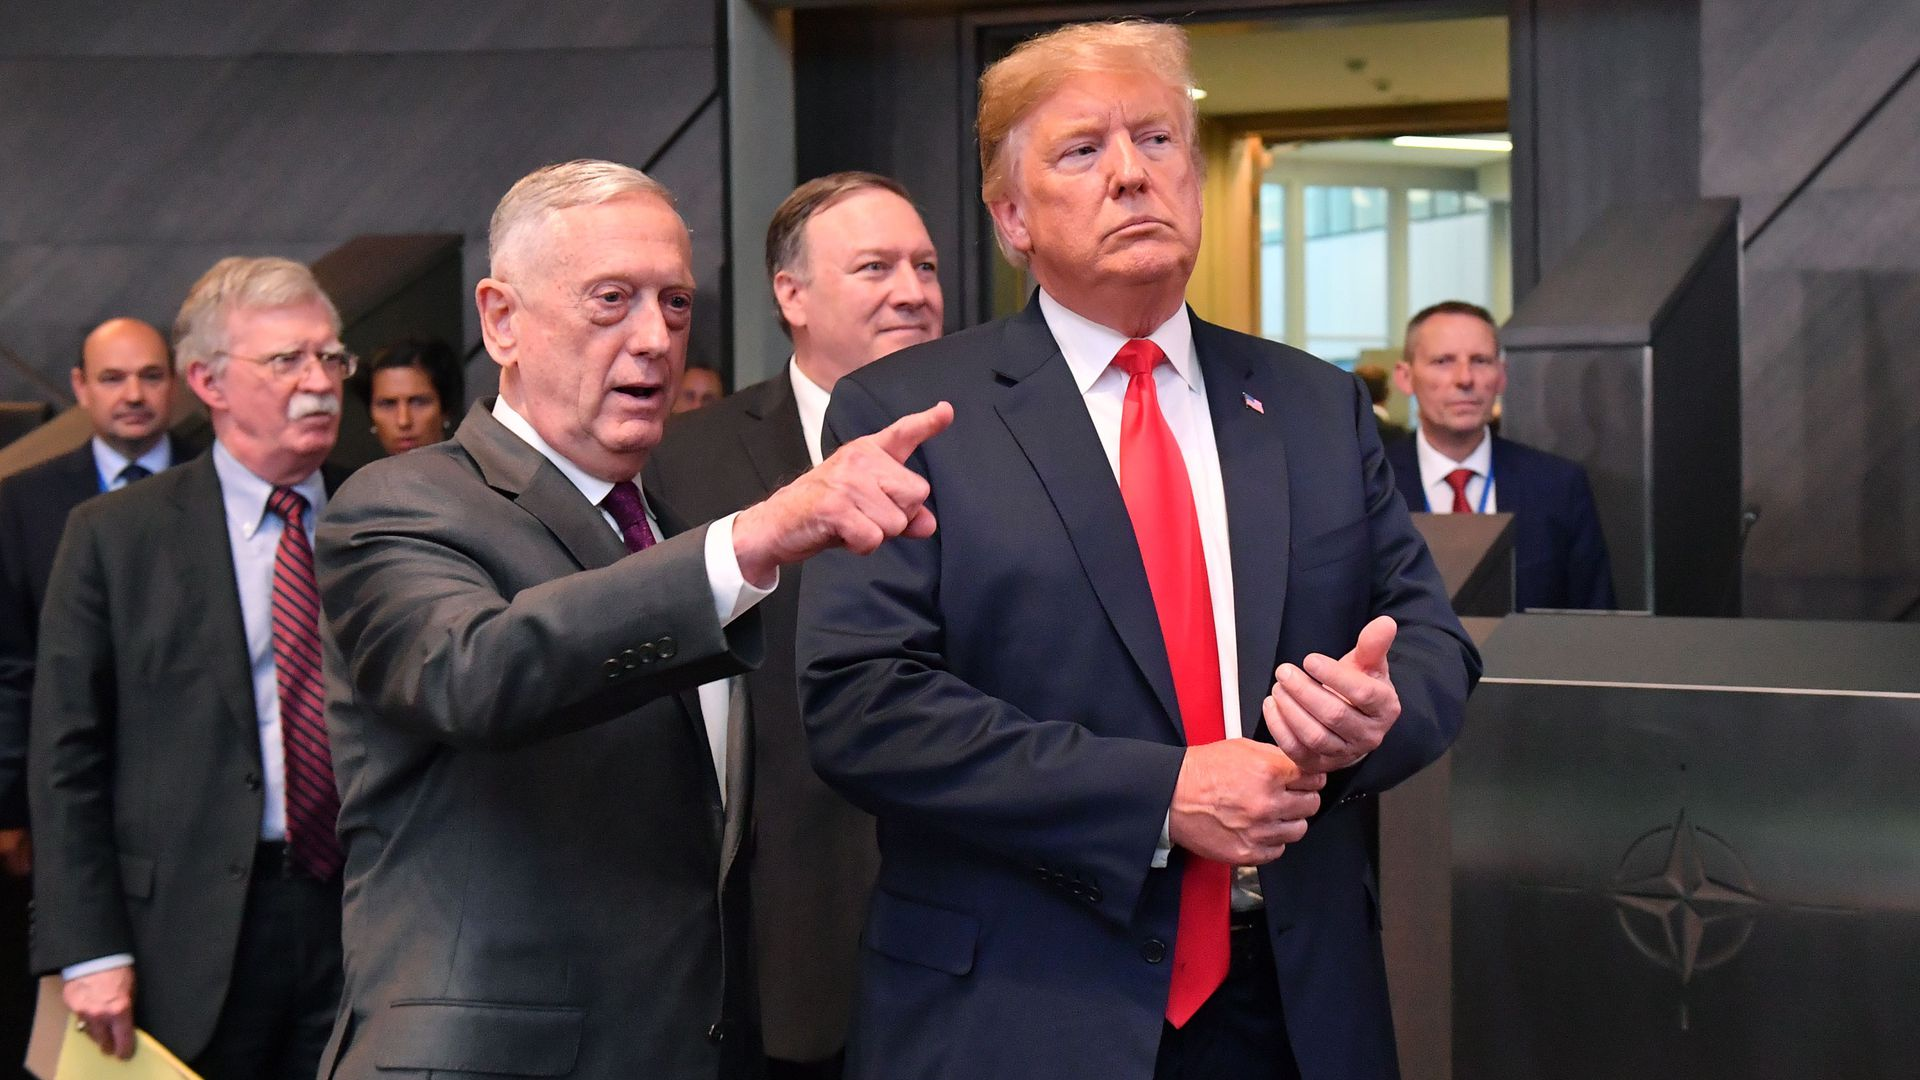 President Trump  walks with Secretary of Defence James Mattis, Secretary of State Mike Pompeo and National Security Adviser National security adviser John Bolton